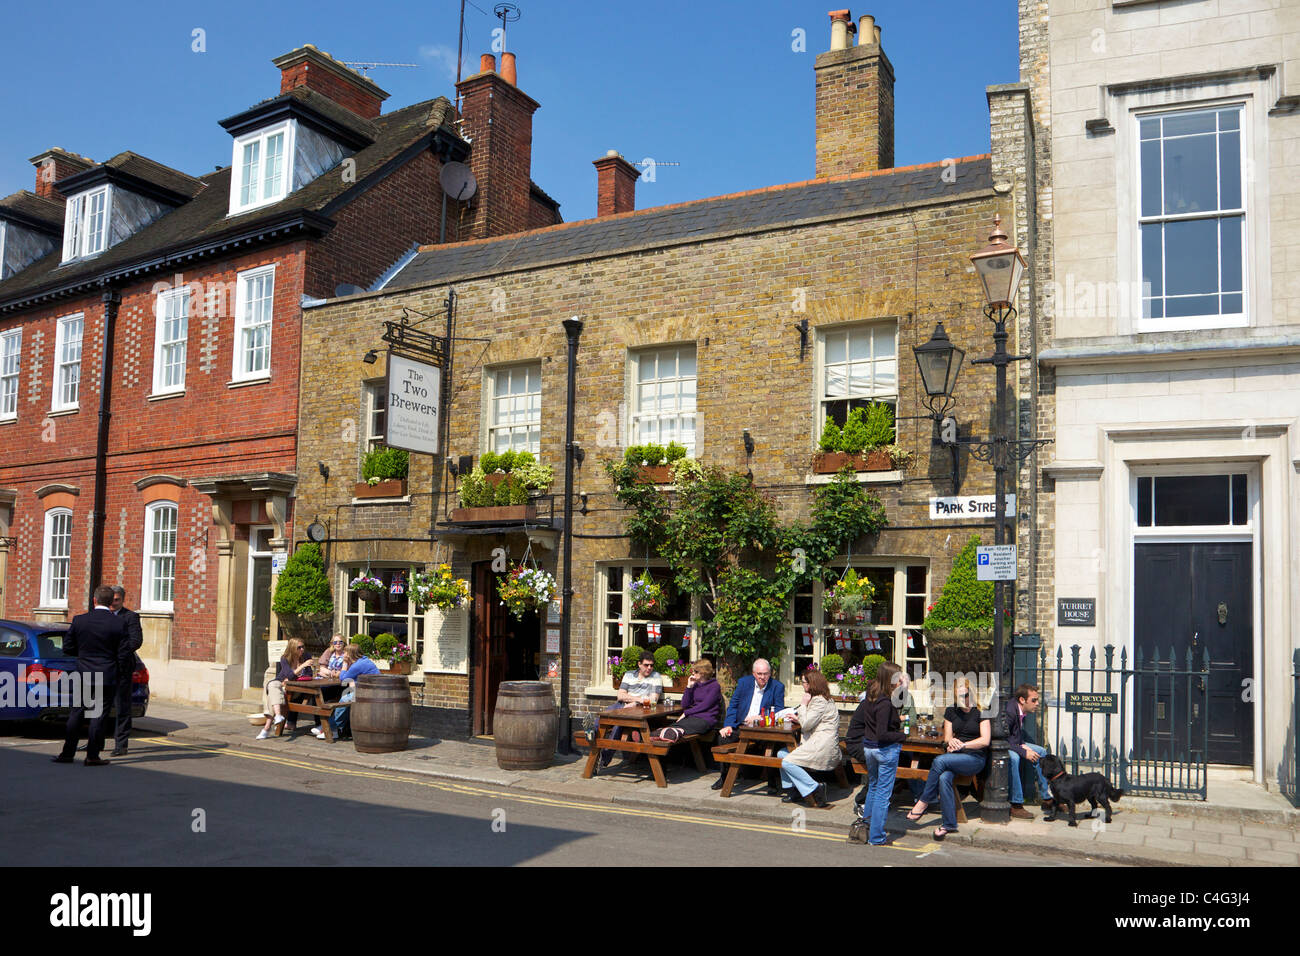 Two Brewers Pub Park Street Windsor Berkshire England GB UK British Isles - Stock Image